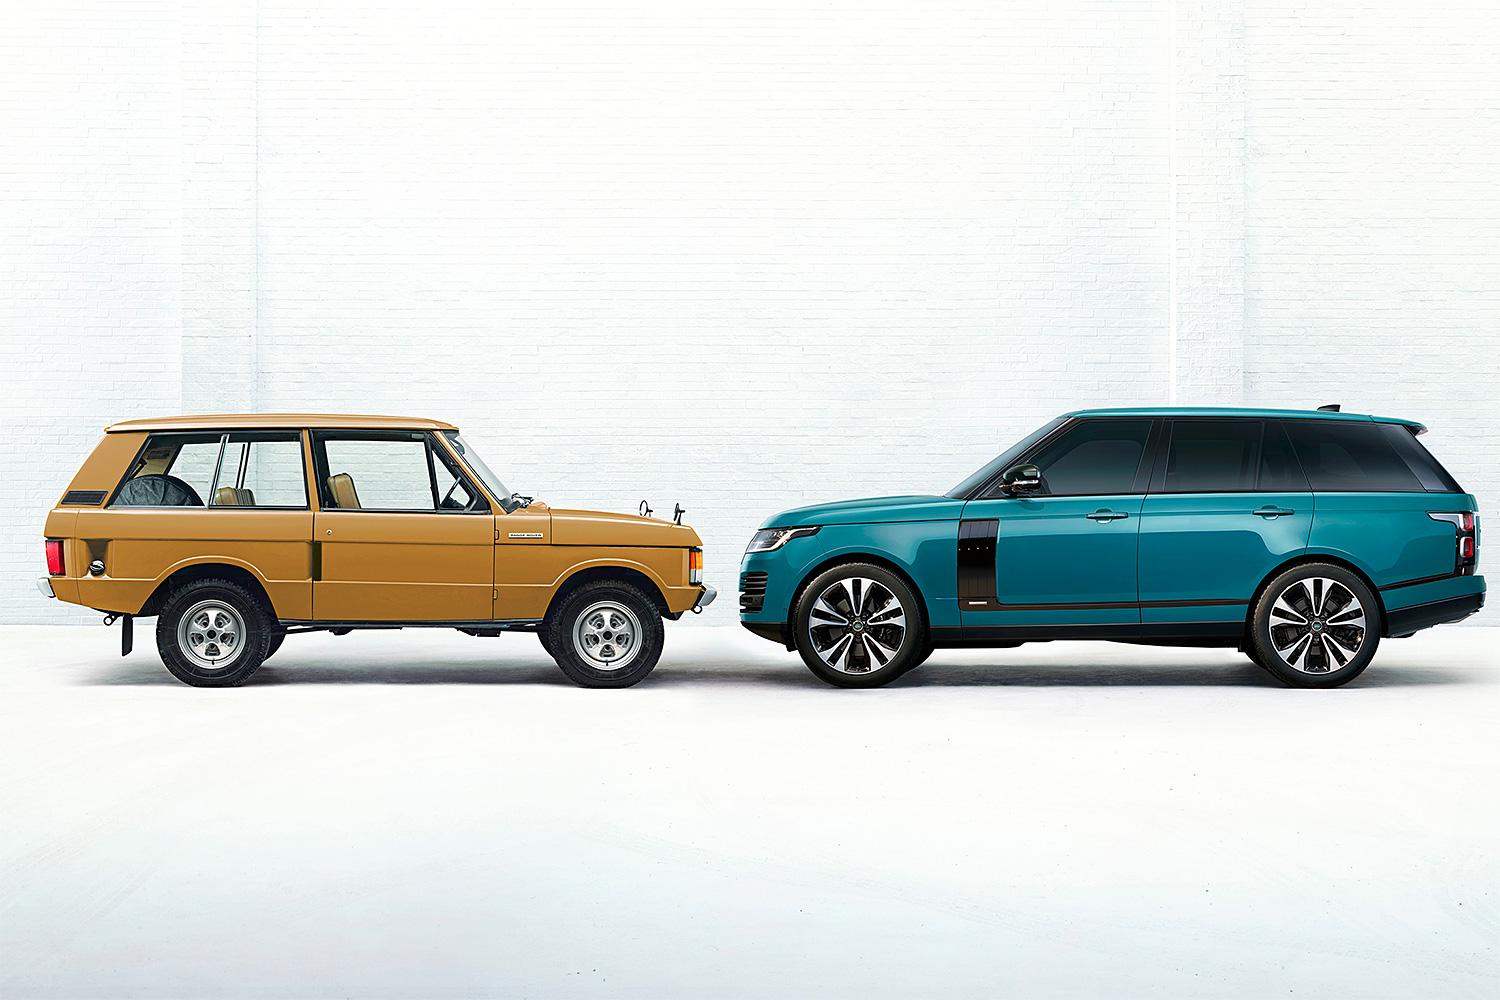 The Iconic Range Rover Looks Amazing At Fifty at werd.com